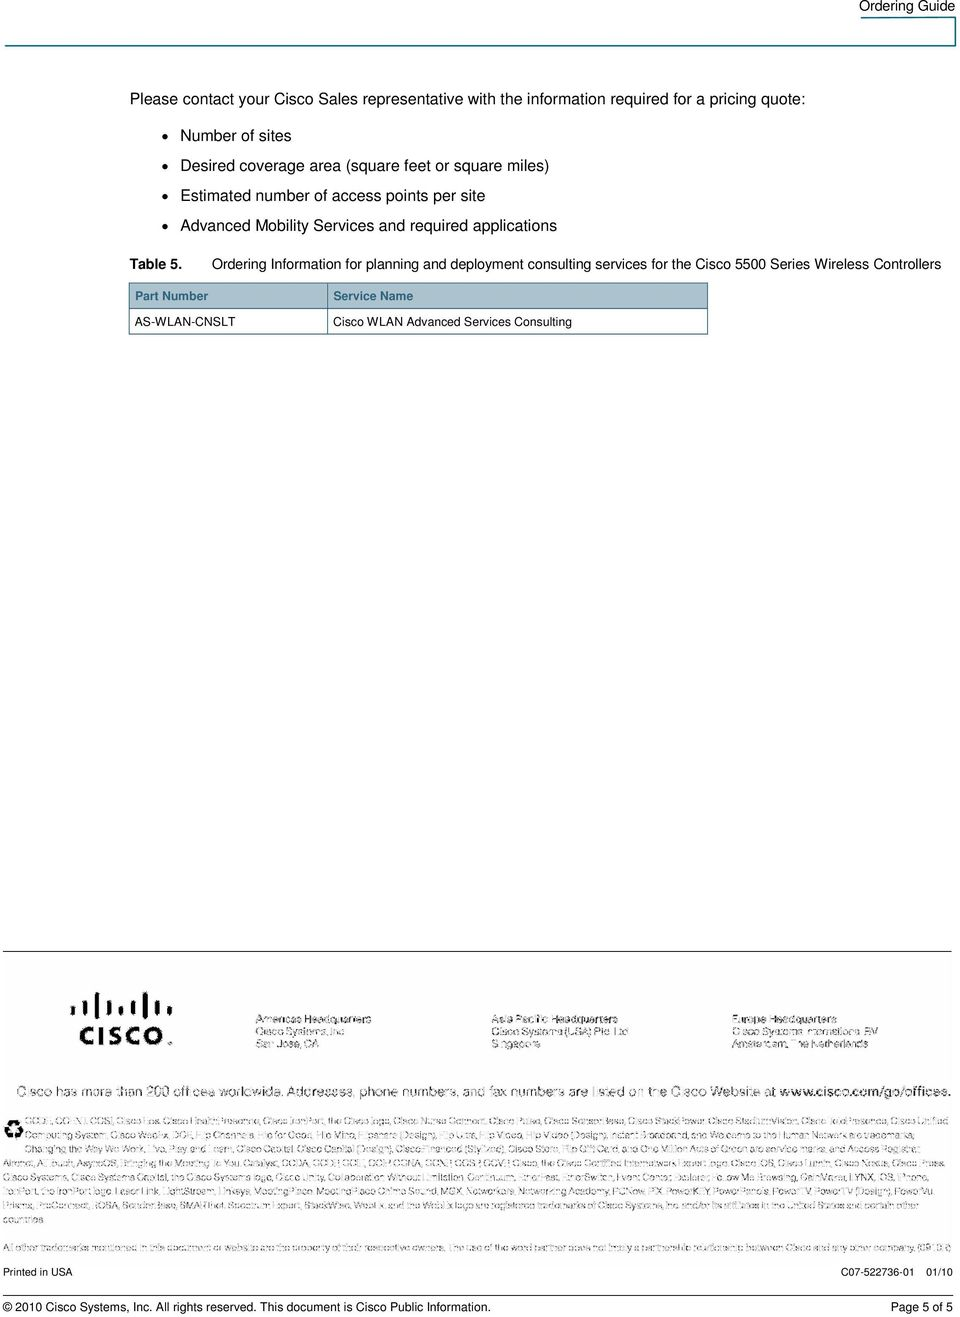 Cisco 5500 Series Wireless Controller Licensing and Ordering